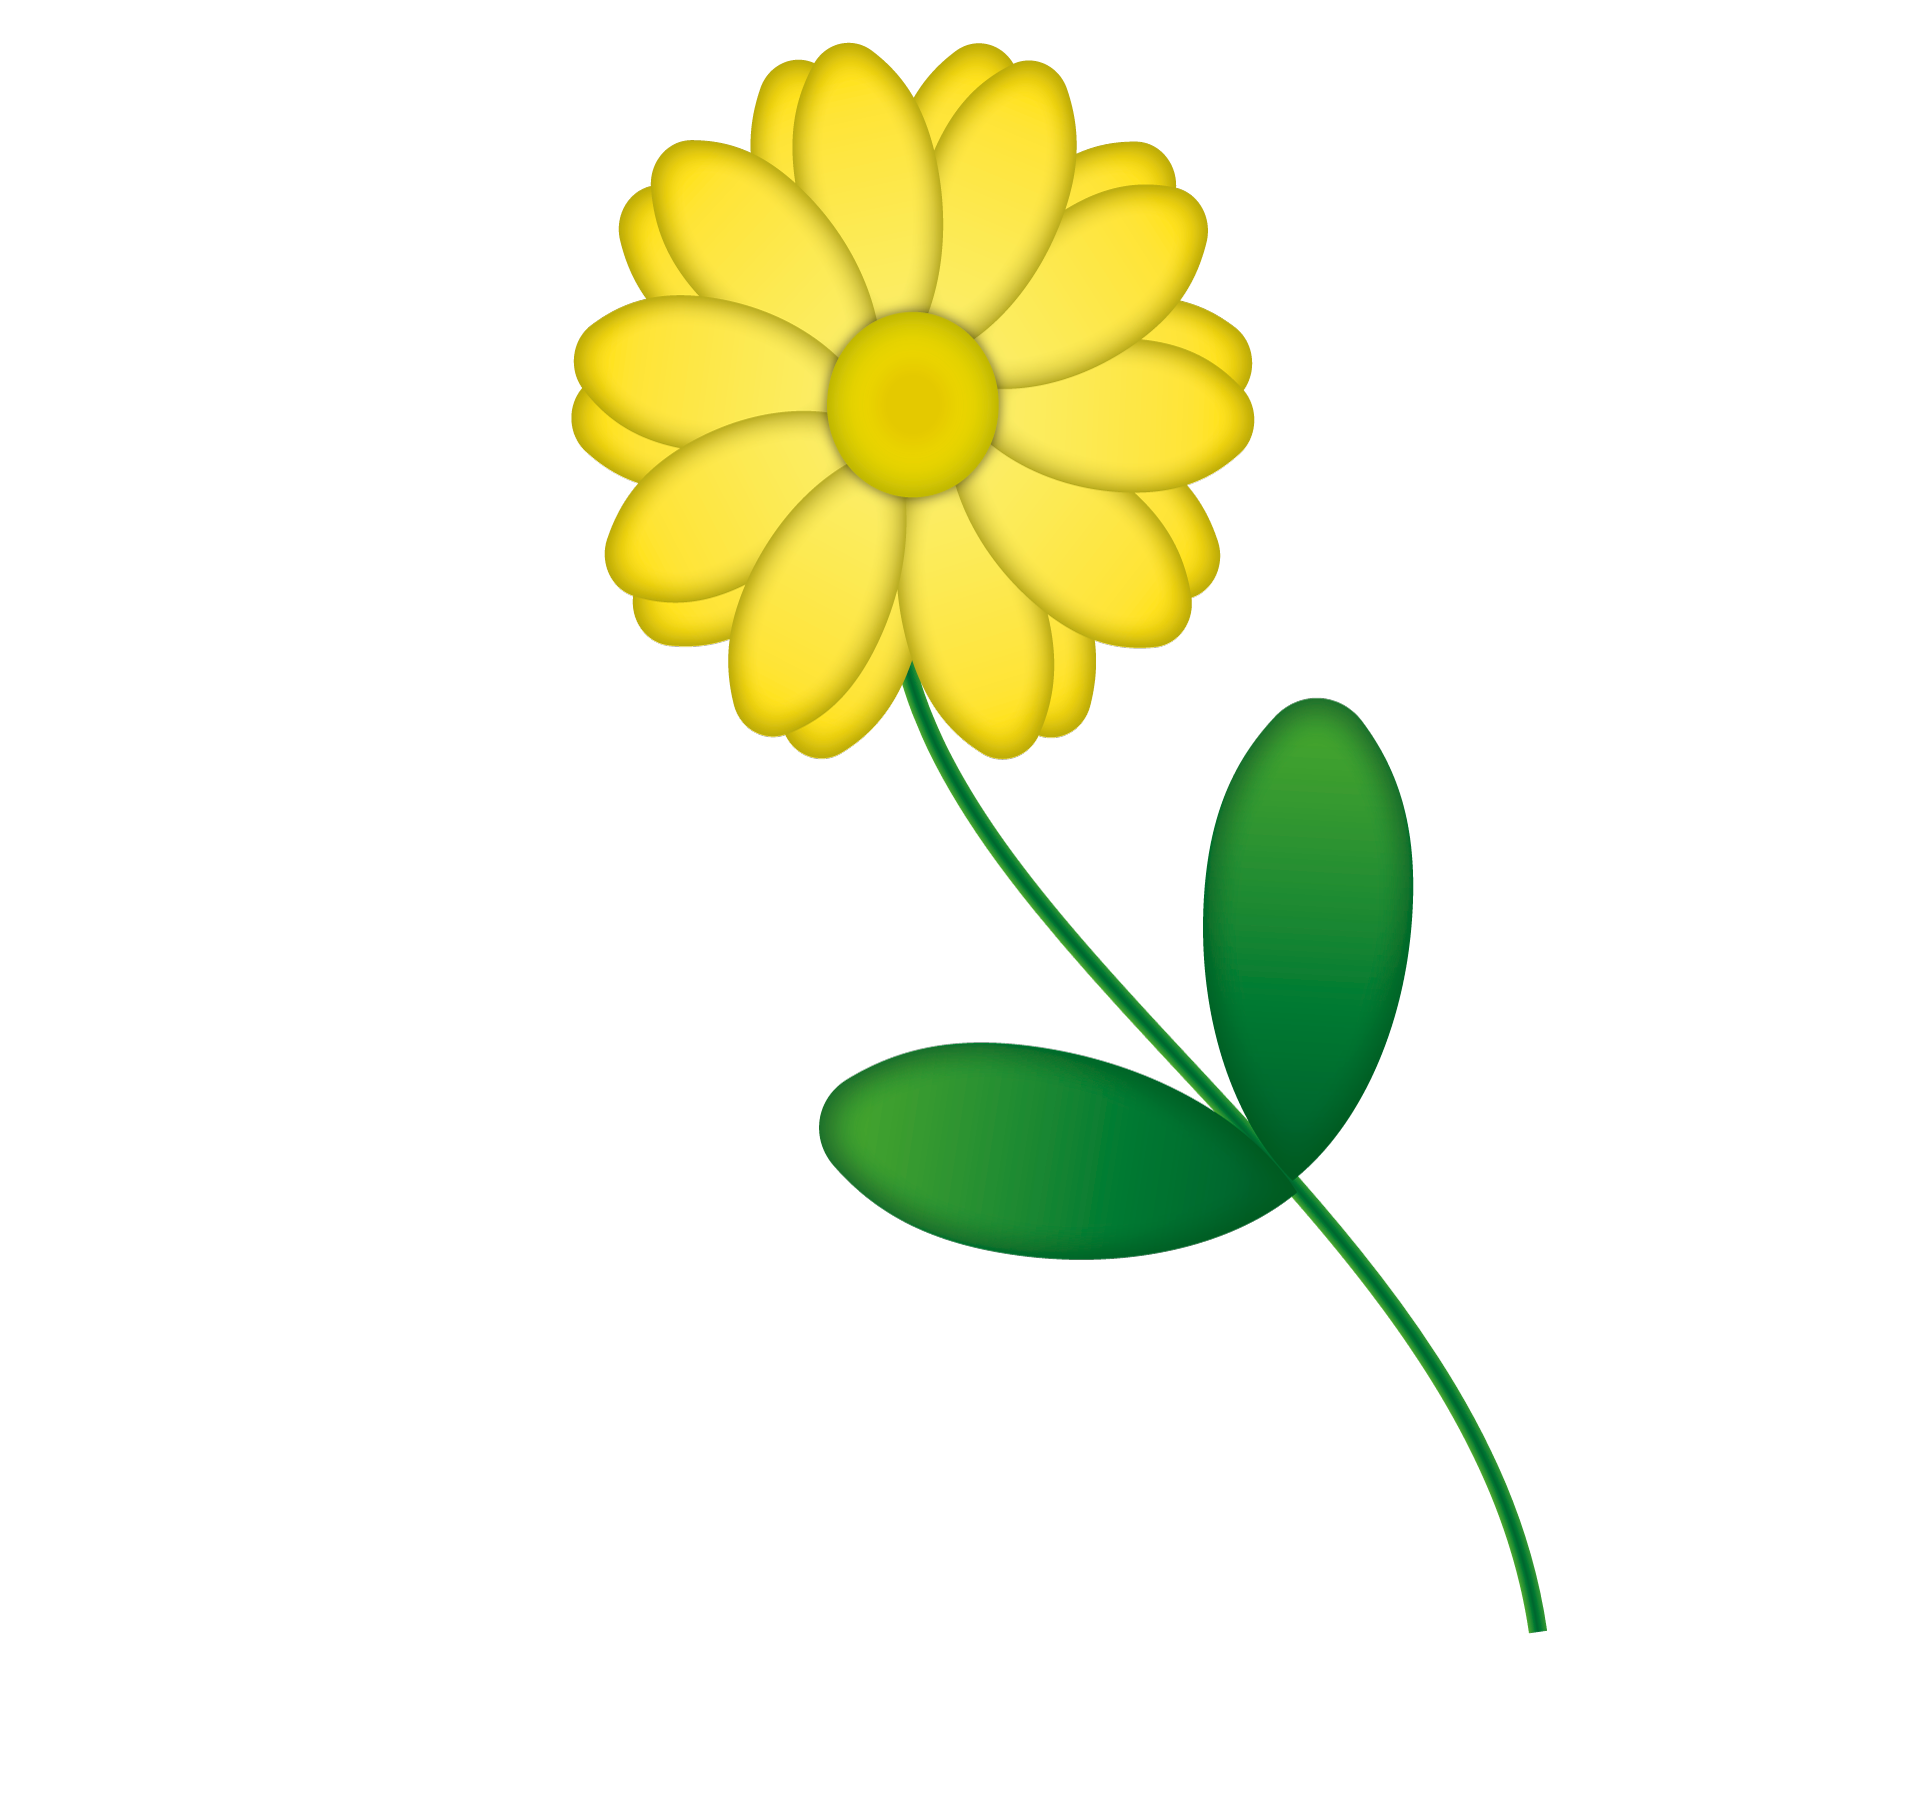 Drawing Of An Isolated Yellow Flower Free Image